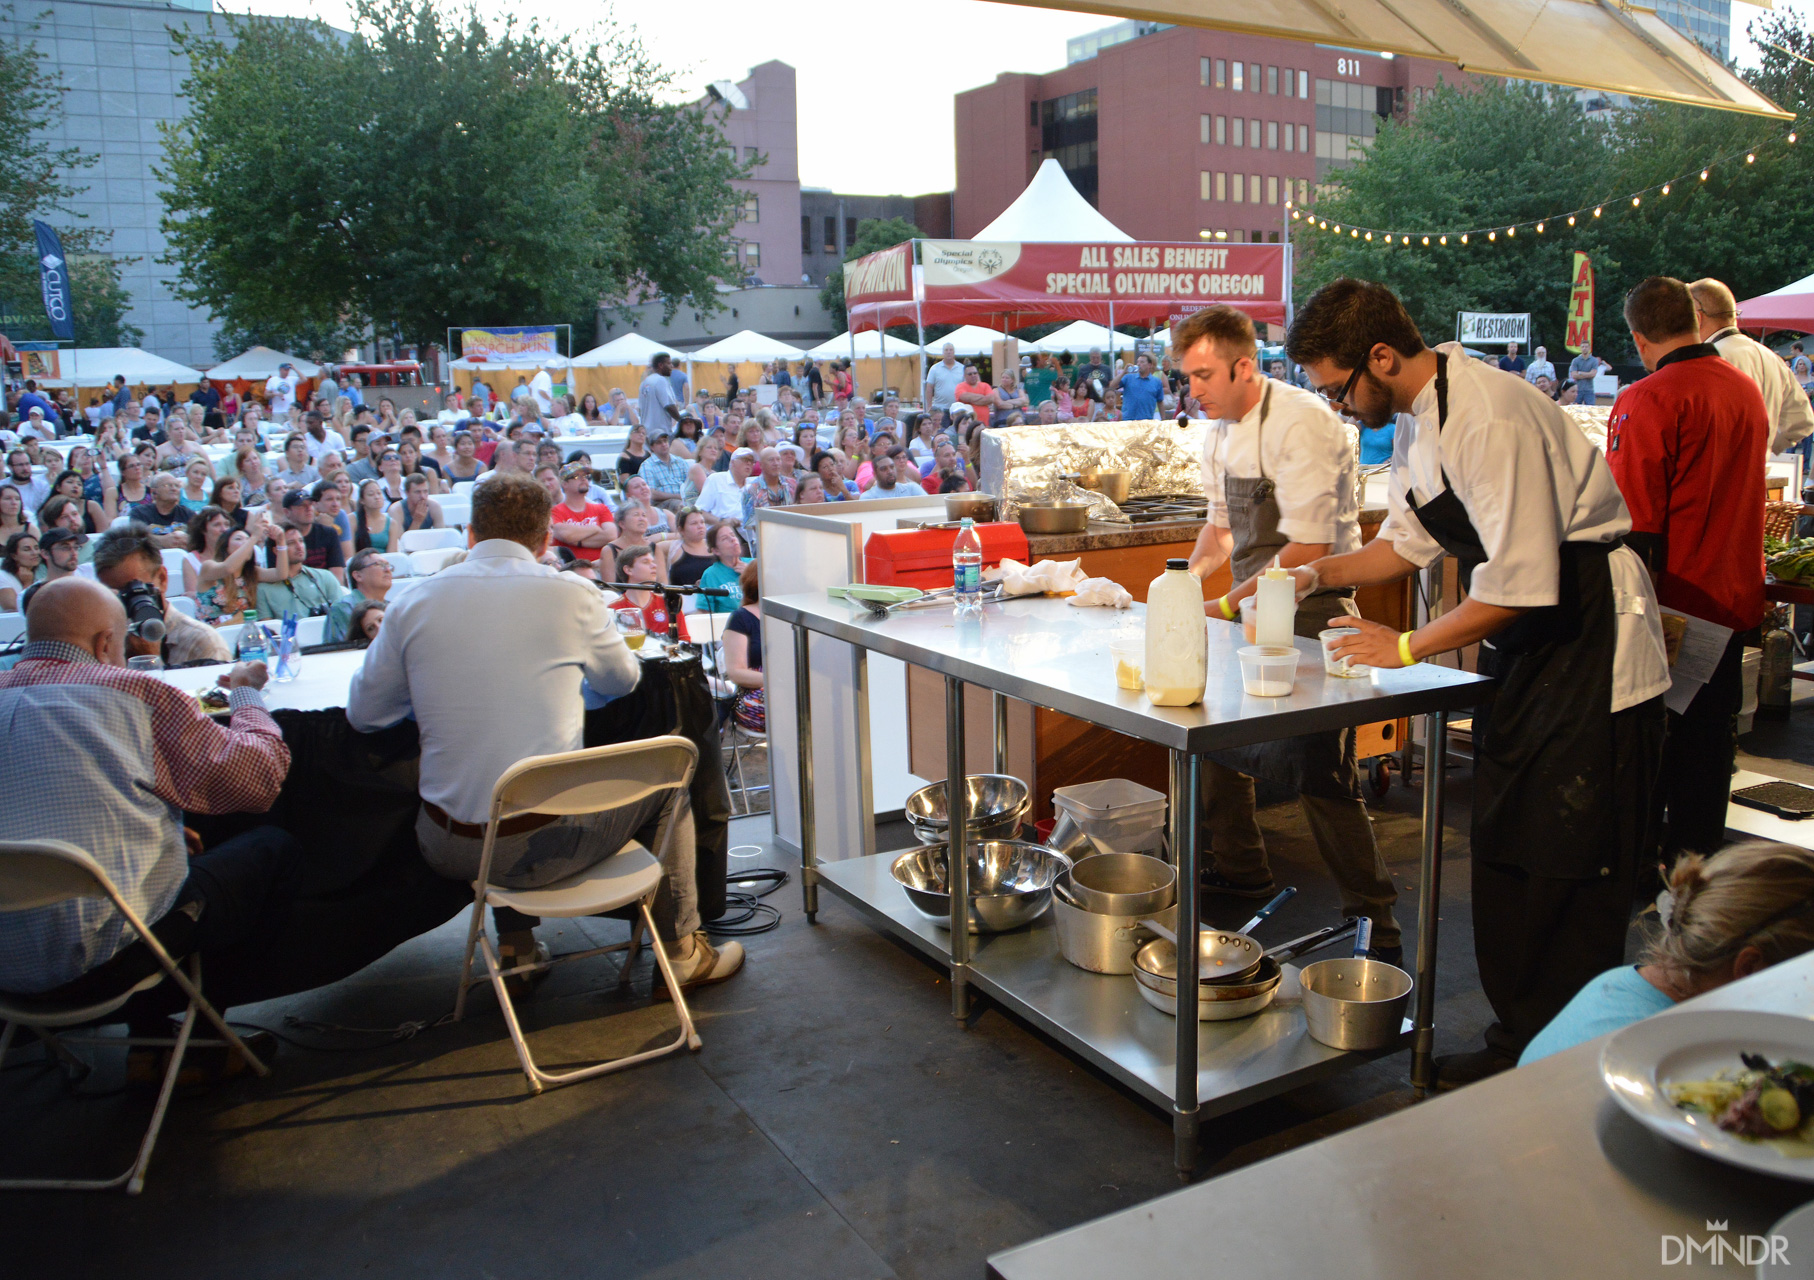 Oregon Iron Chef Competition winners at work looking out at the crowd